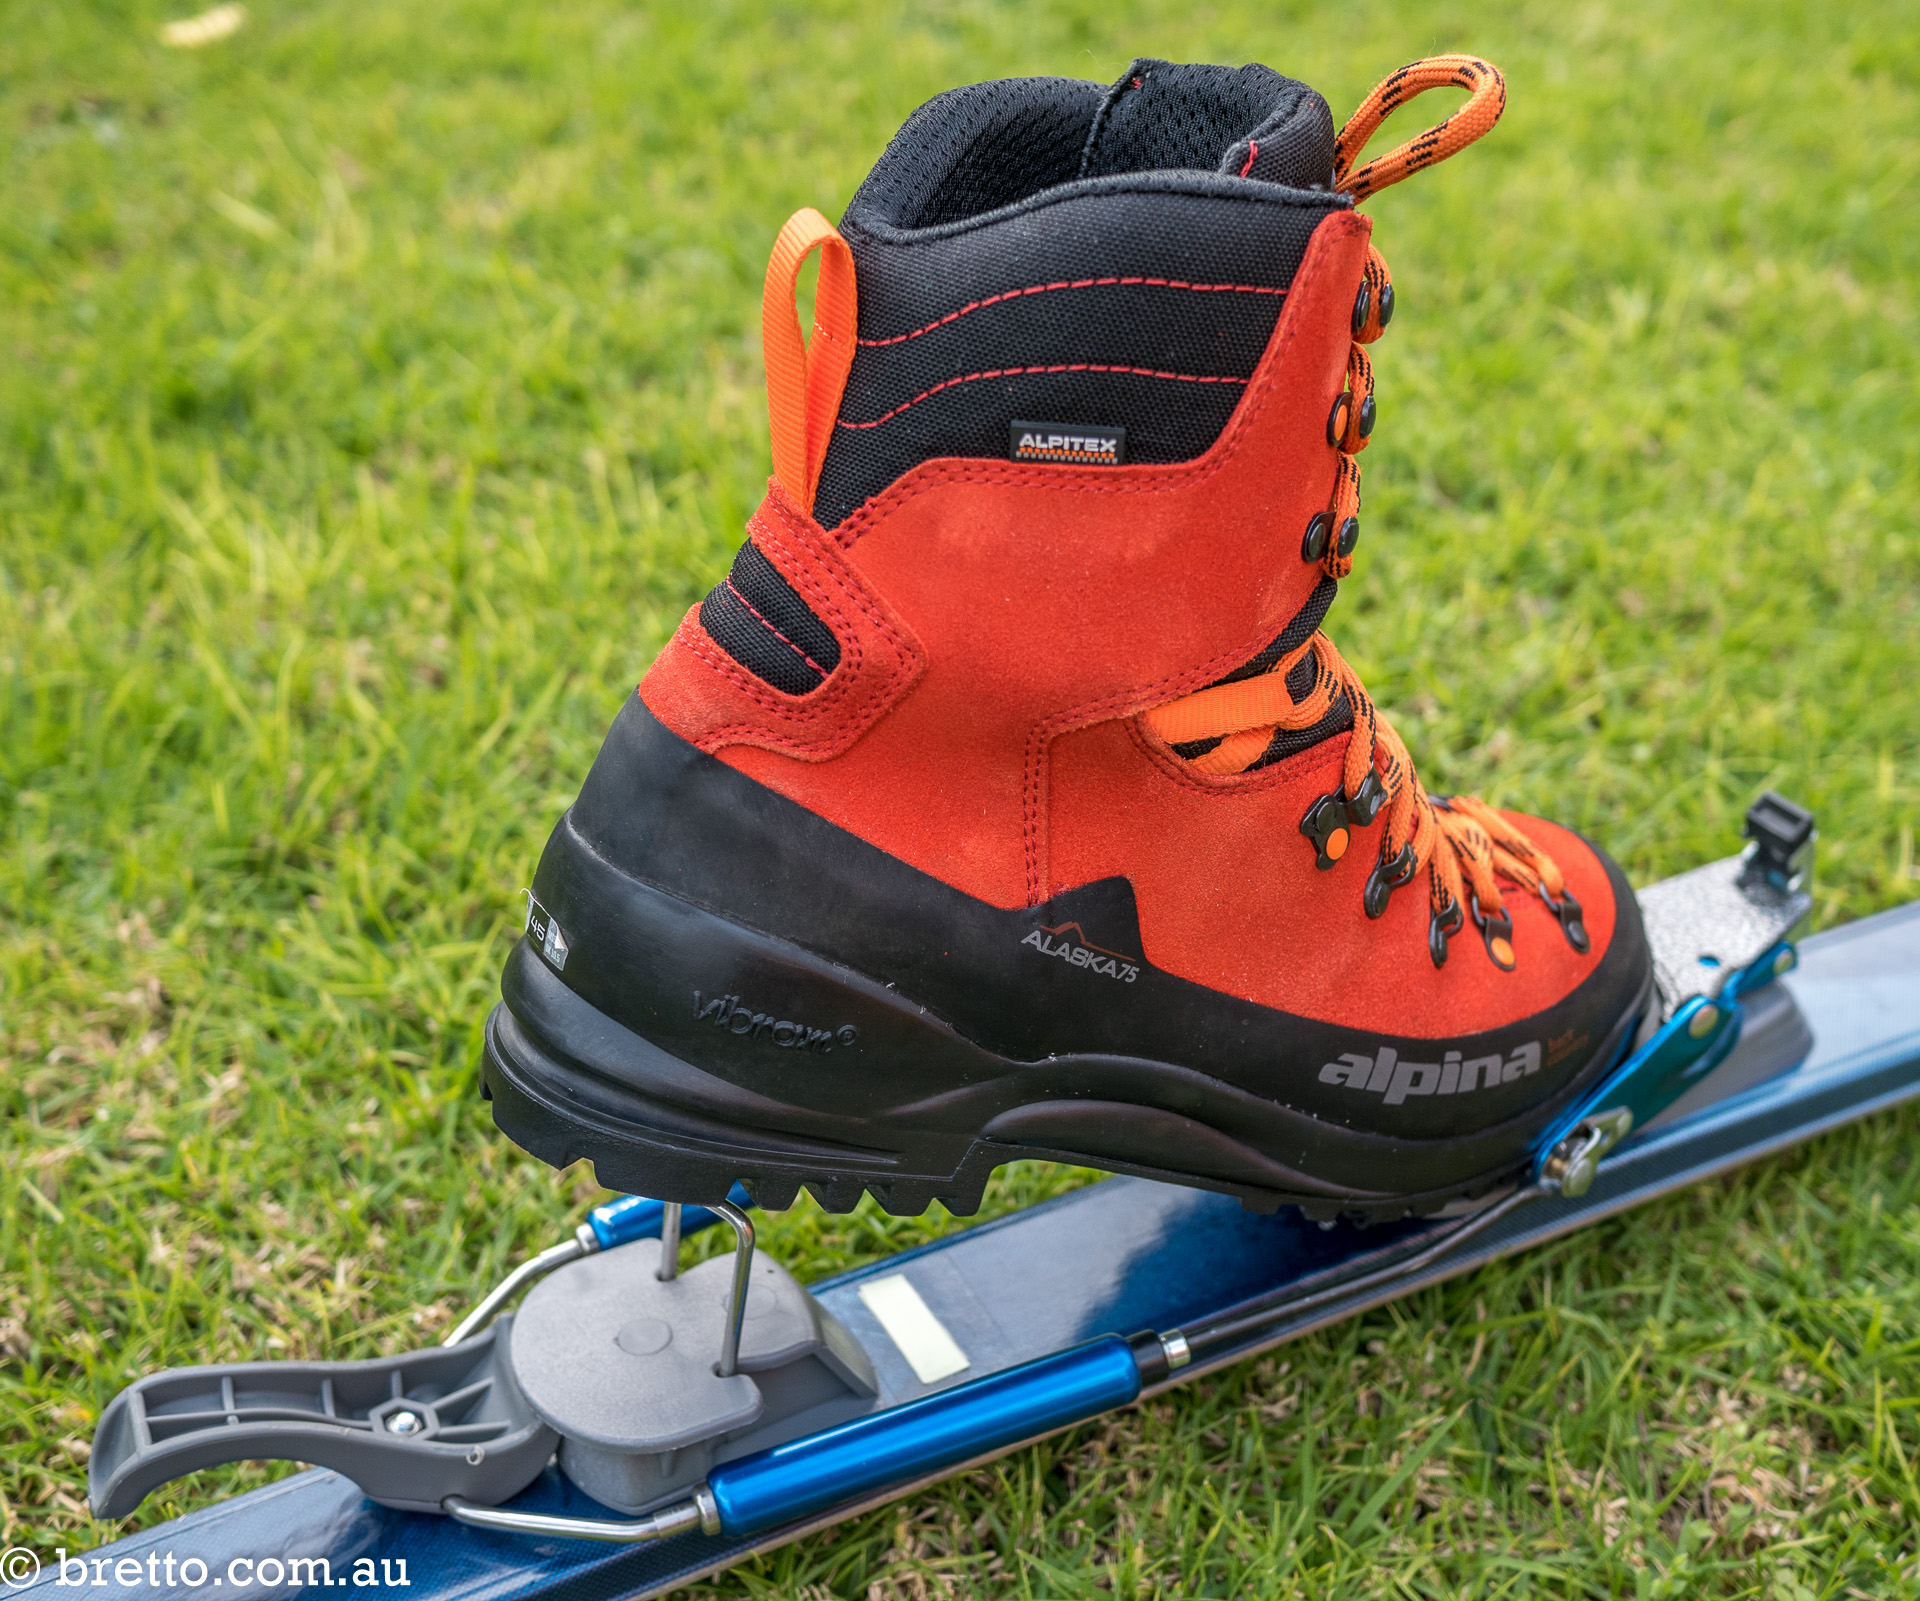 Gear Review: Alpina Alaska 75 Ski Boots & Voile Hardwire 3